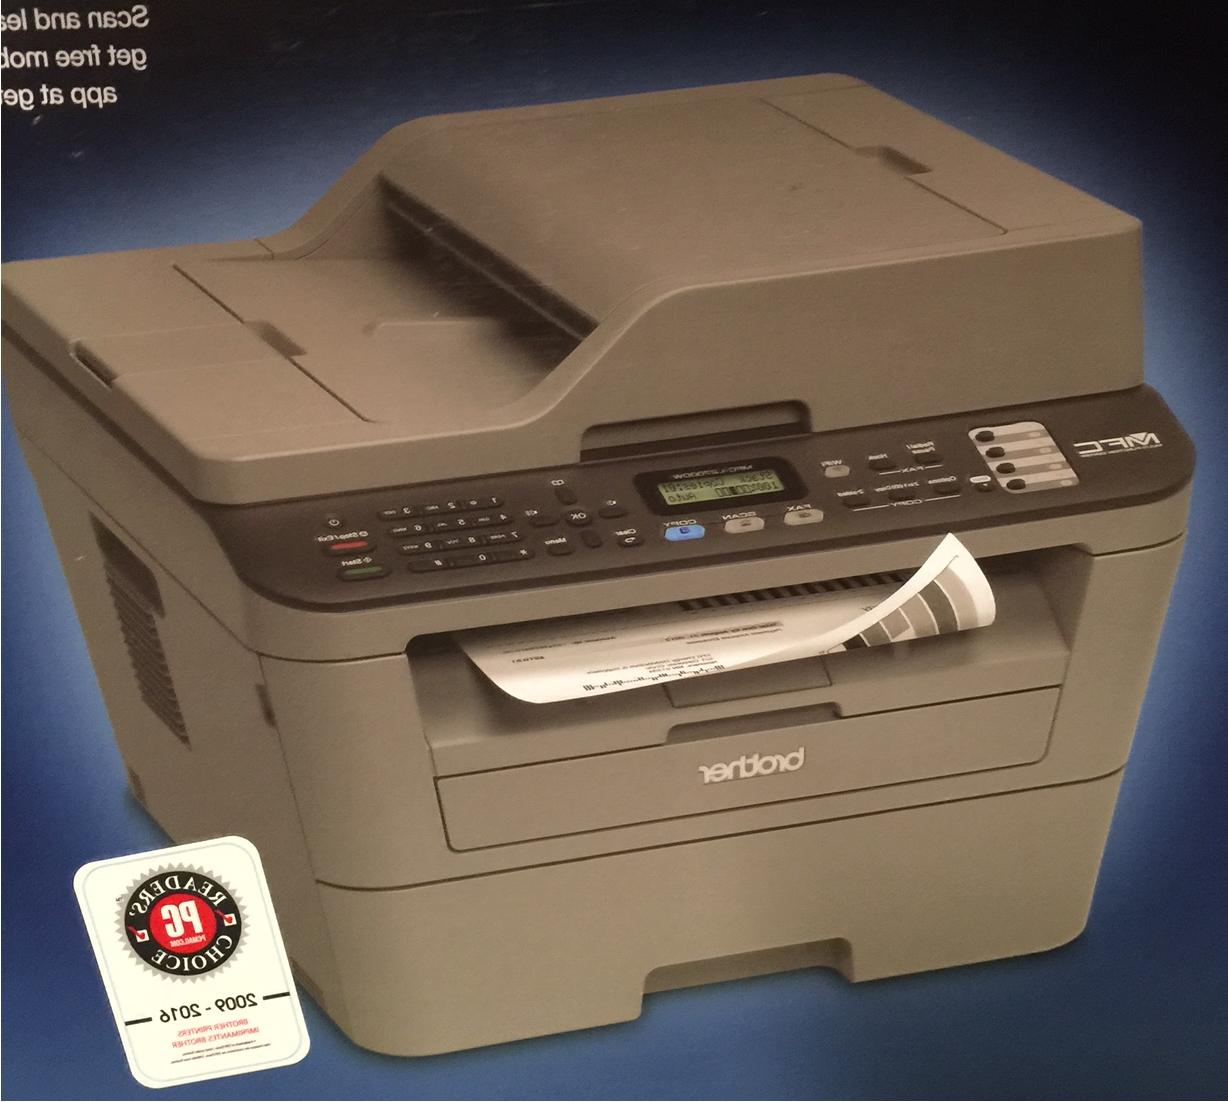 mfcl2700dw compact laser one printer